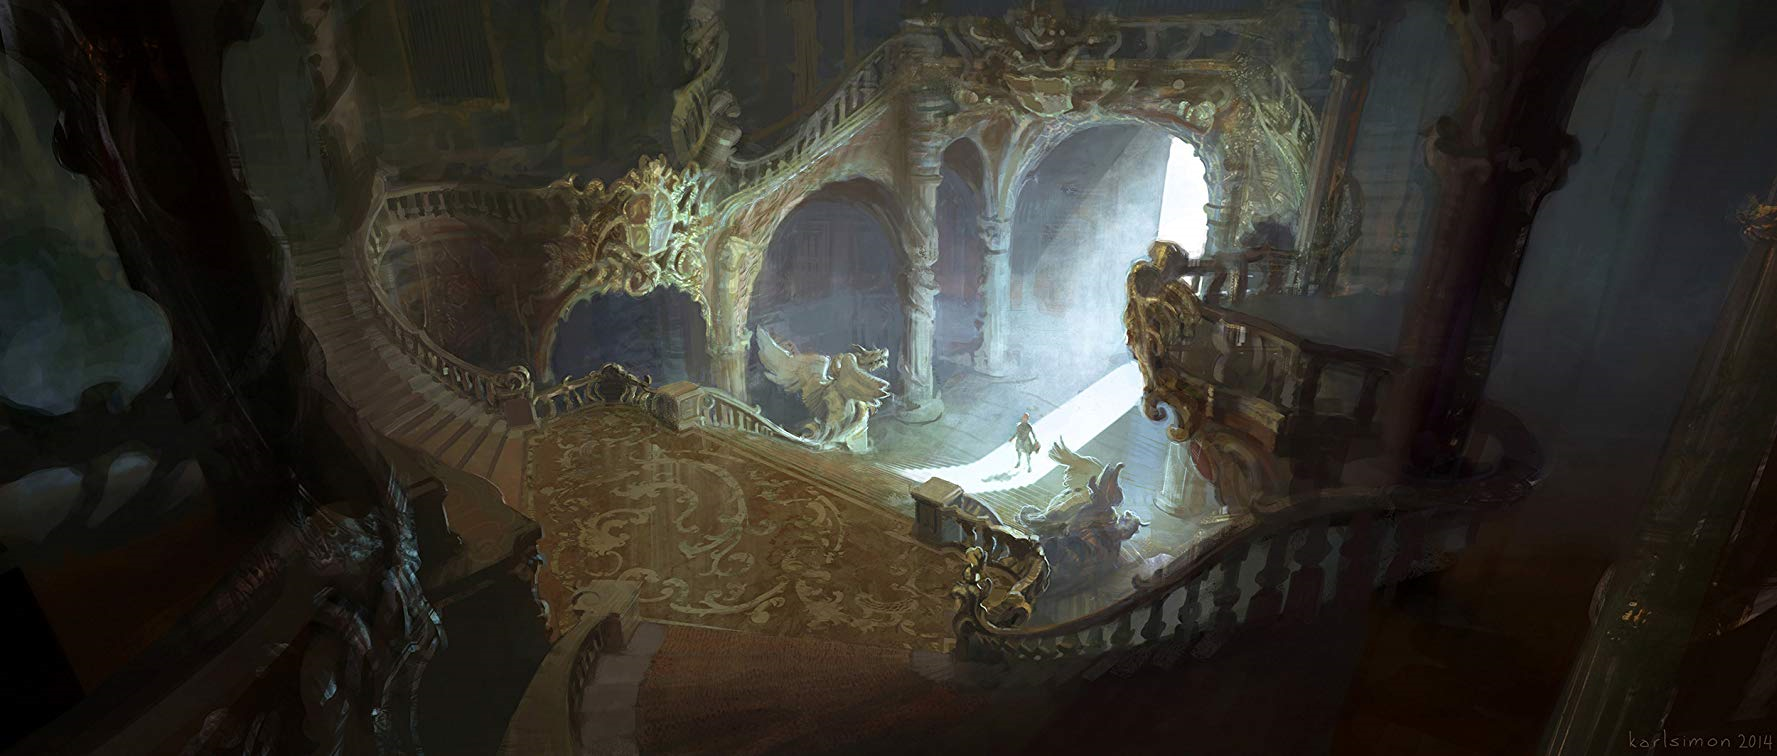 BATB Castle Stairway 2 concept.png